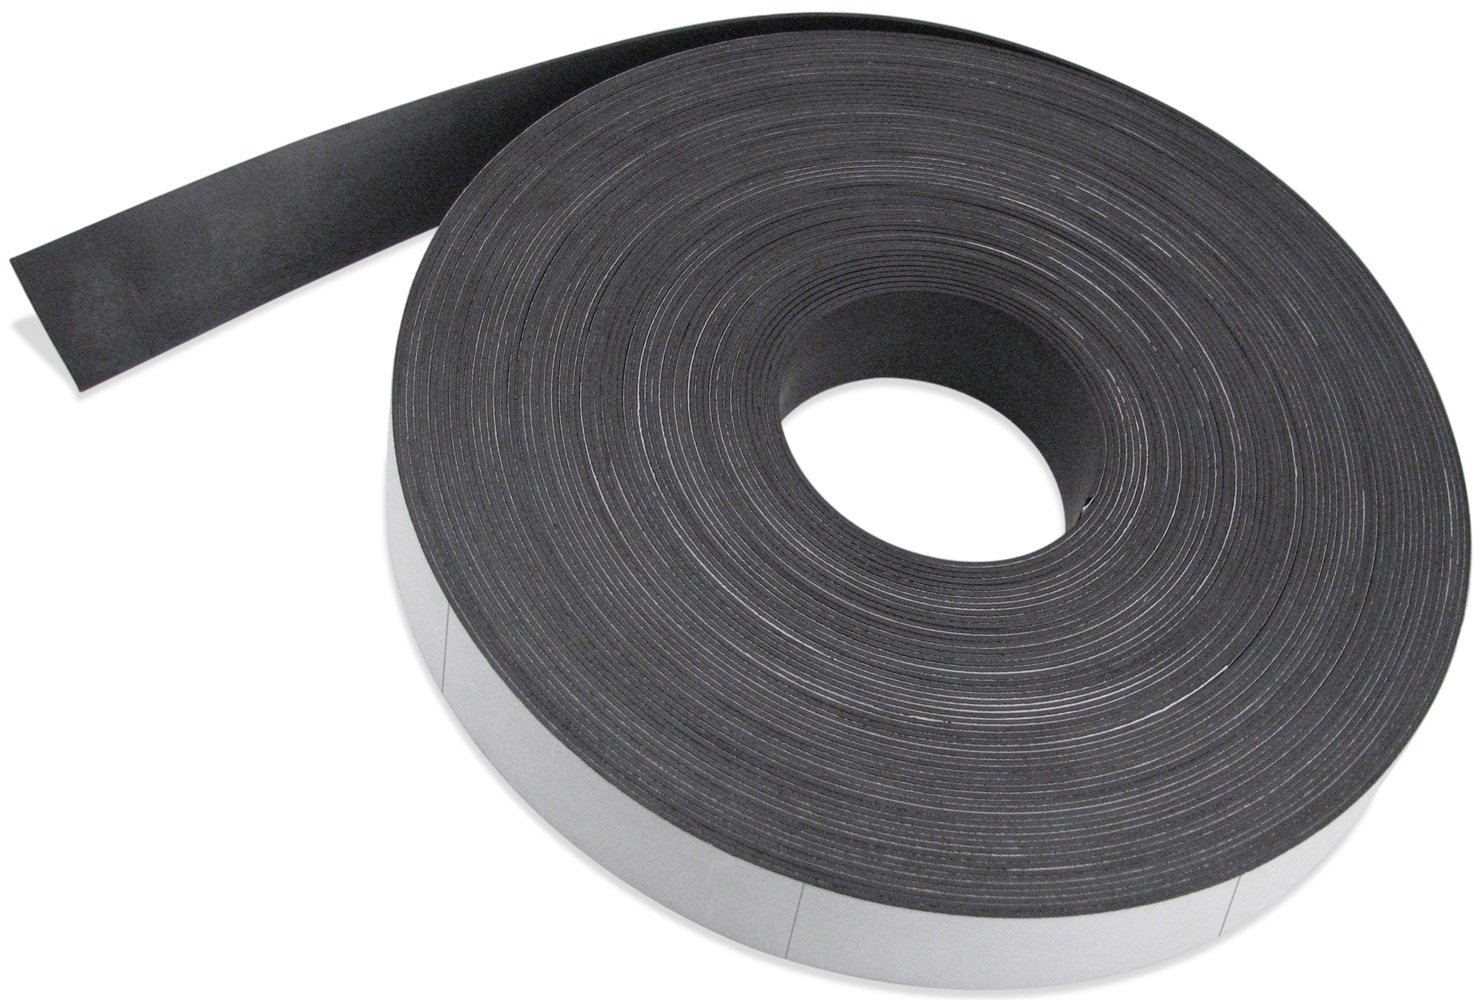 Flexible Magnet Strip with White Vinyl Coating, 1/32'' Thick, 2'' Height, 200 Feet Scored Every 3'', 1 Roll with - 796-2'' x 3'' Pieces